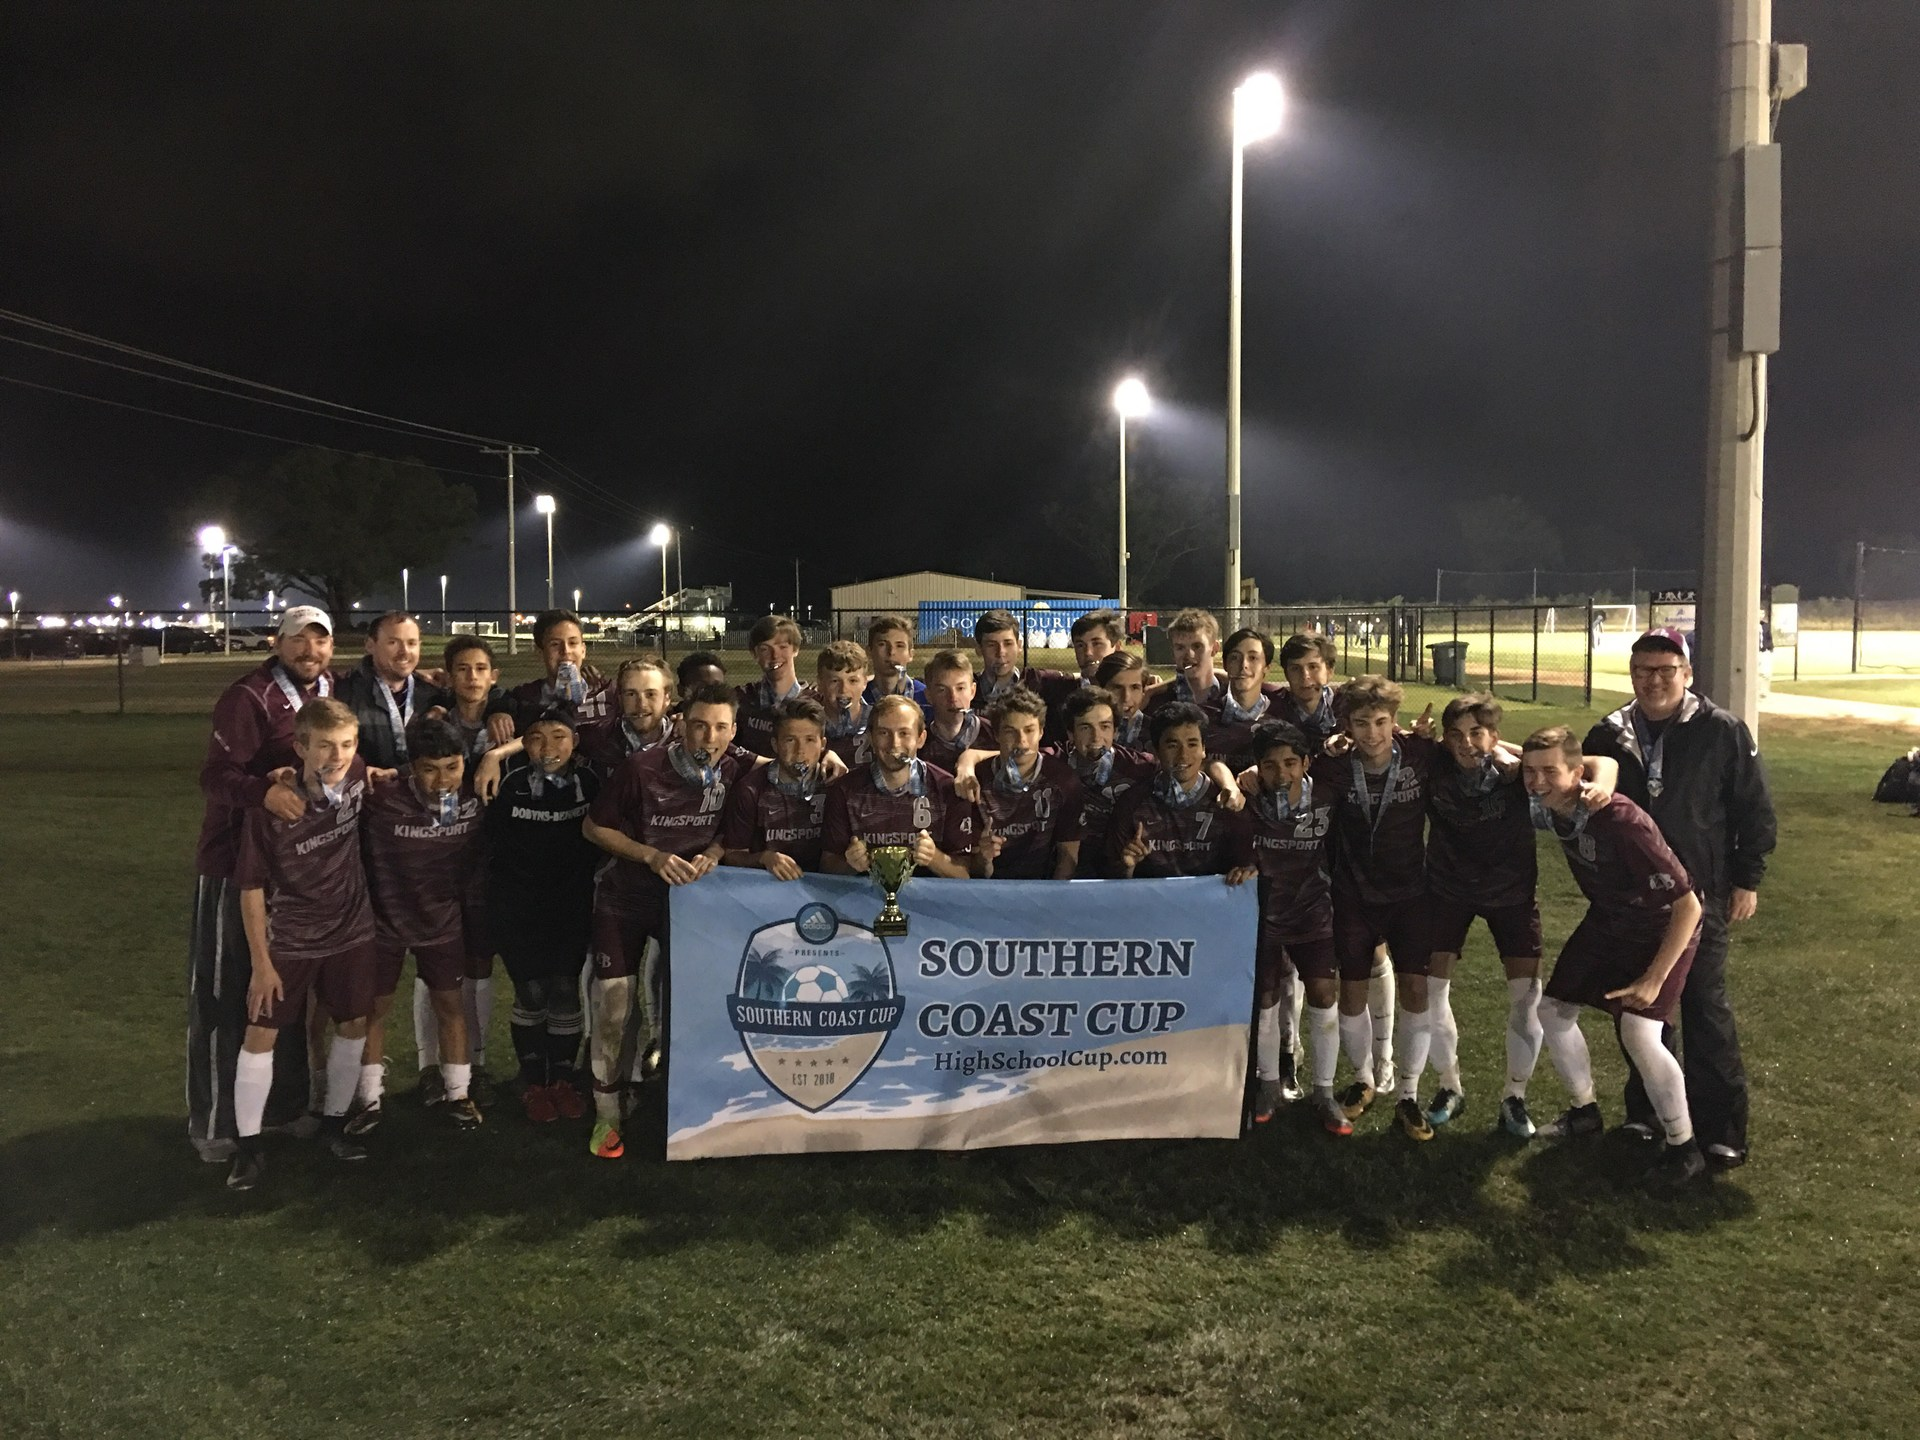 2018 Southern Coast Cup Moccasin Bay CHAMPIONS!!!